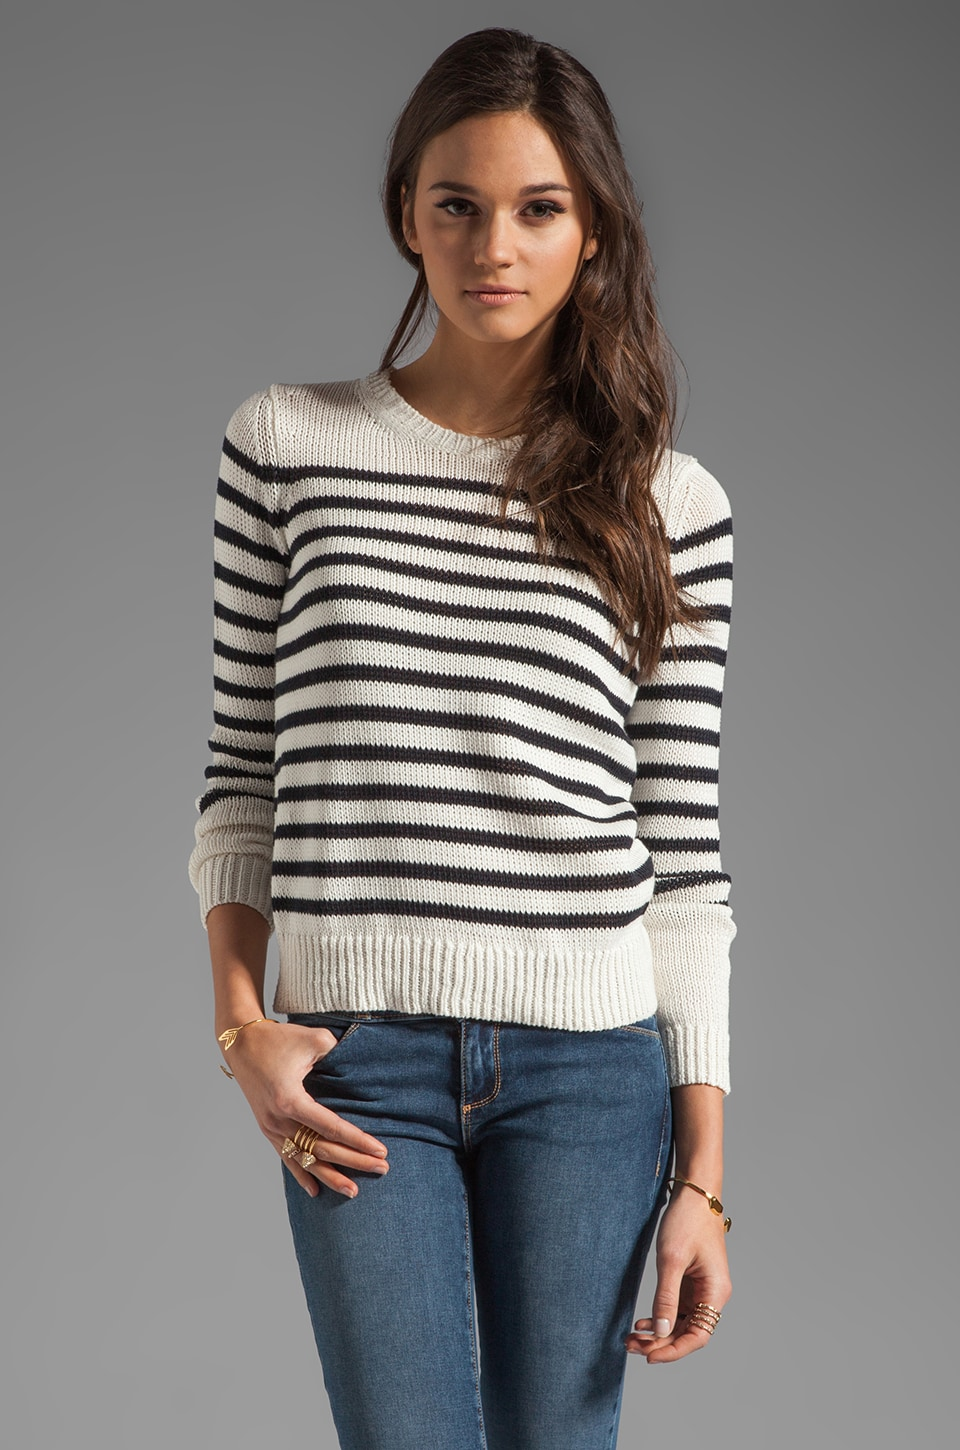 Theory Poised Saida Sweater Top in White/Navy